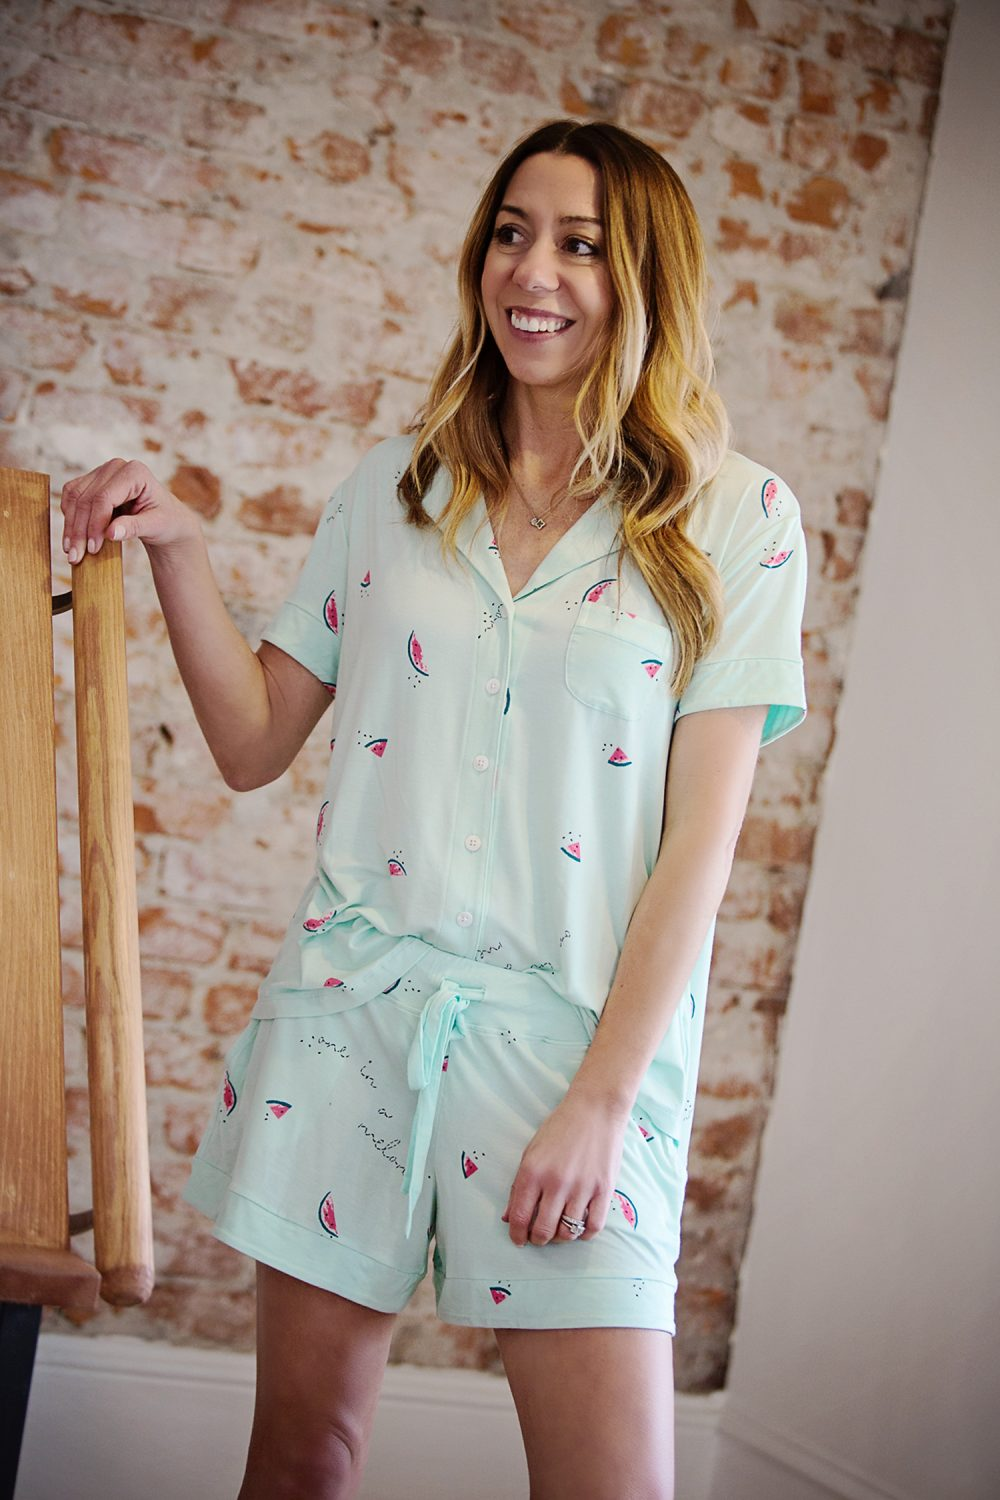 The Motherchic wearing Soma Cool nights pajamas